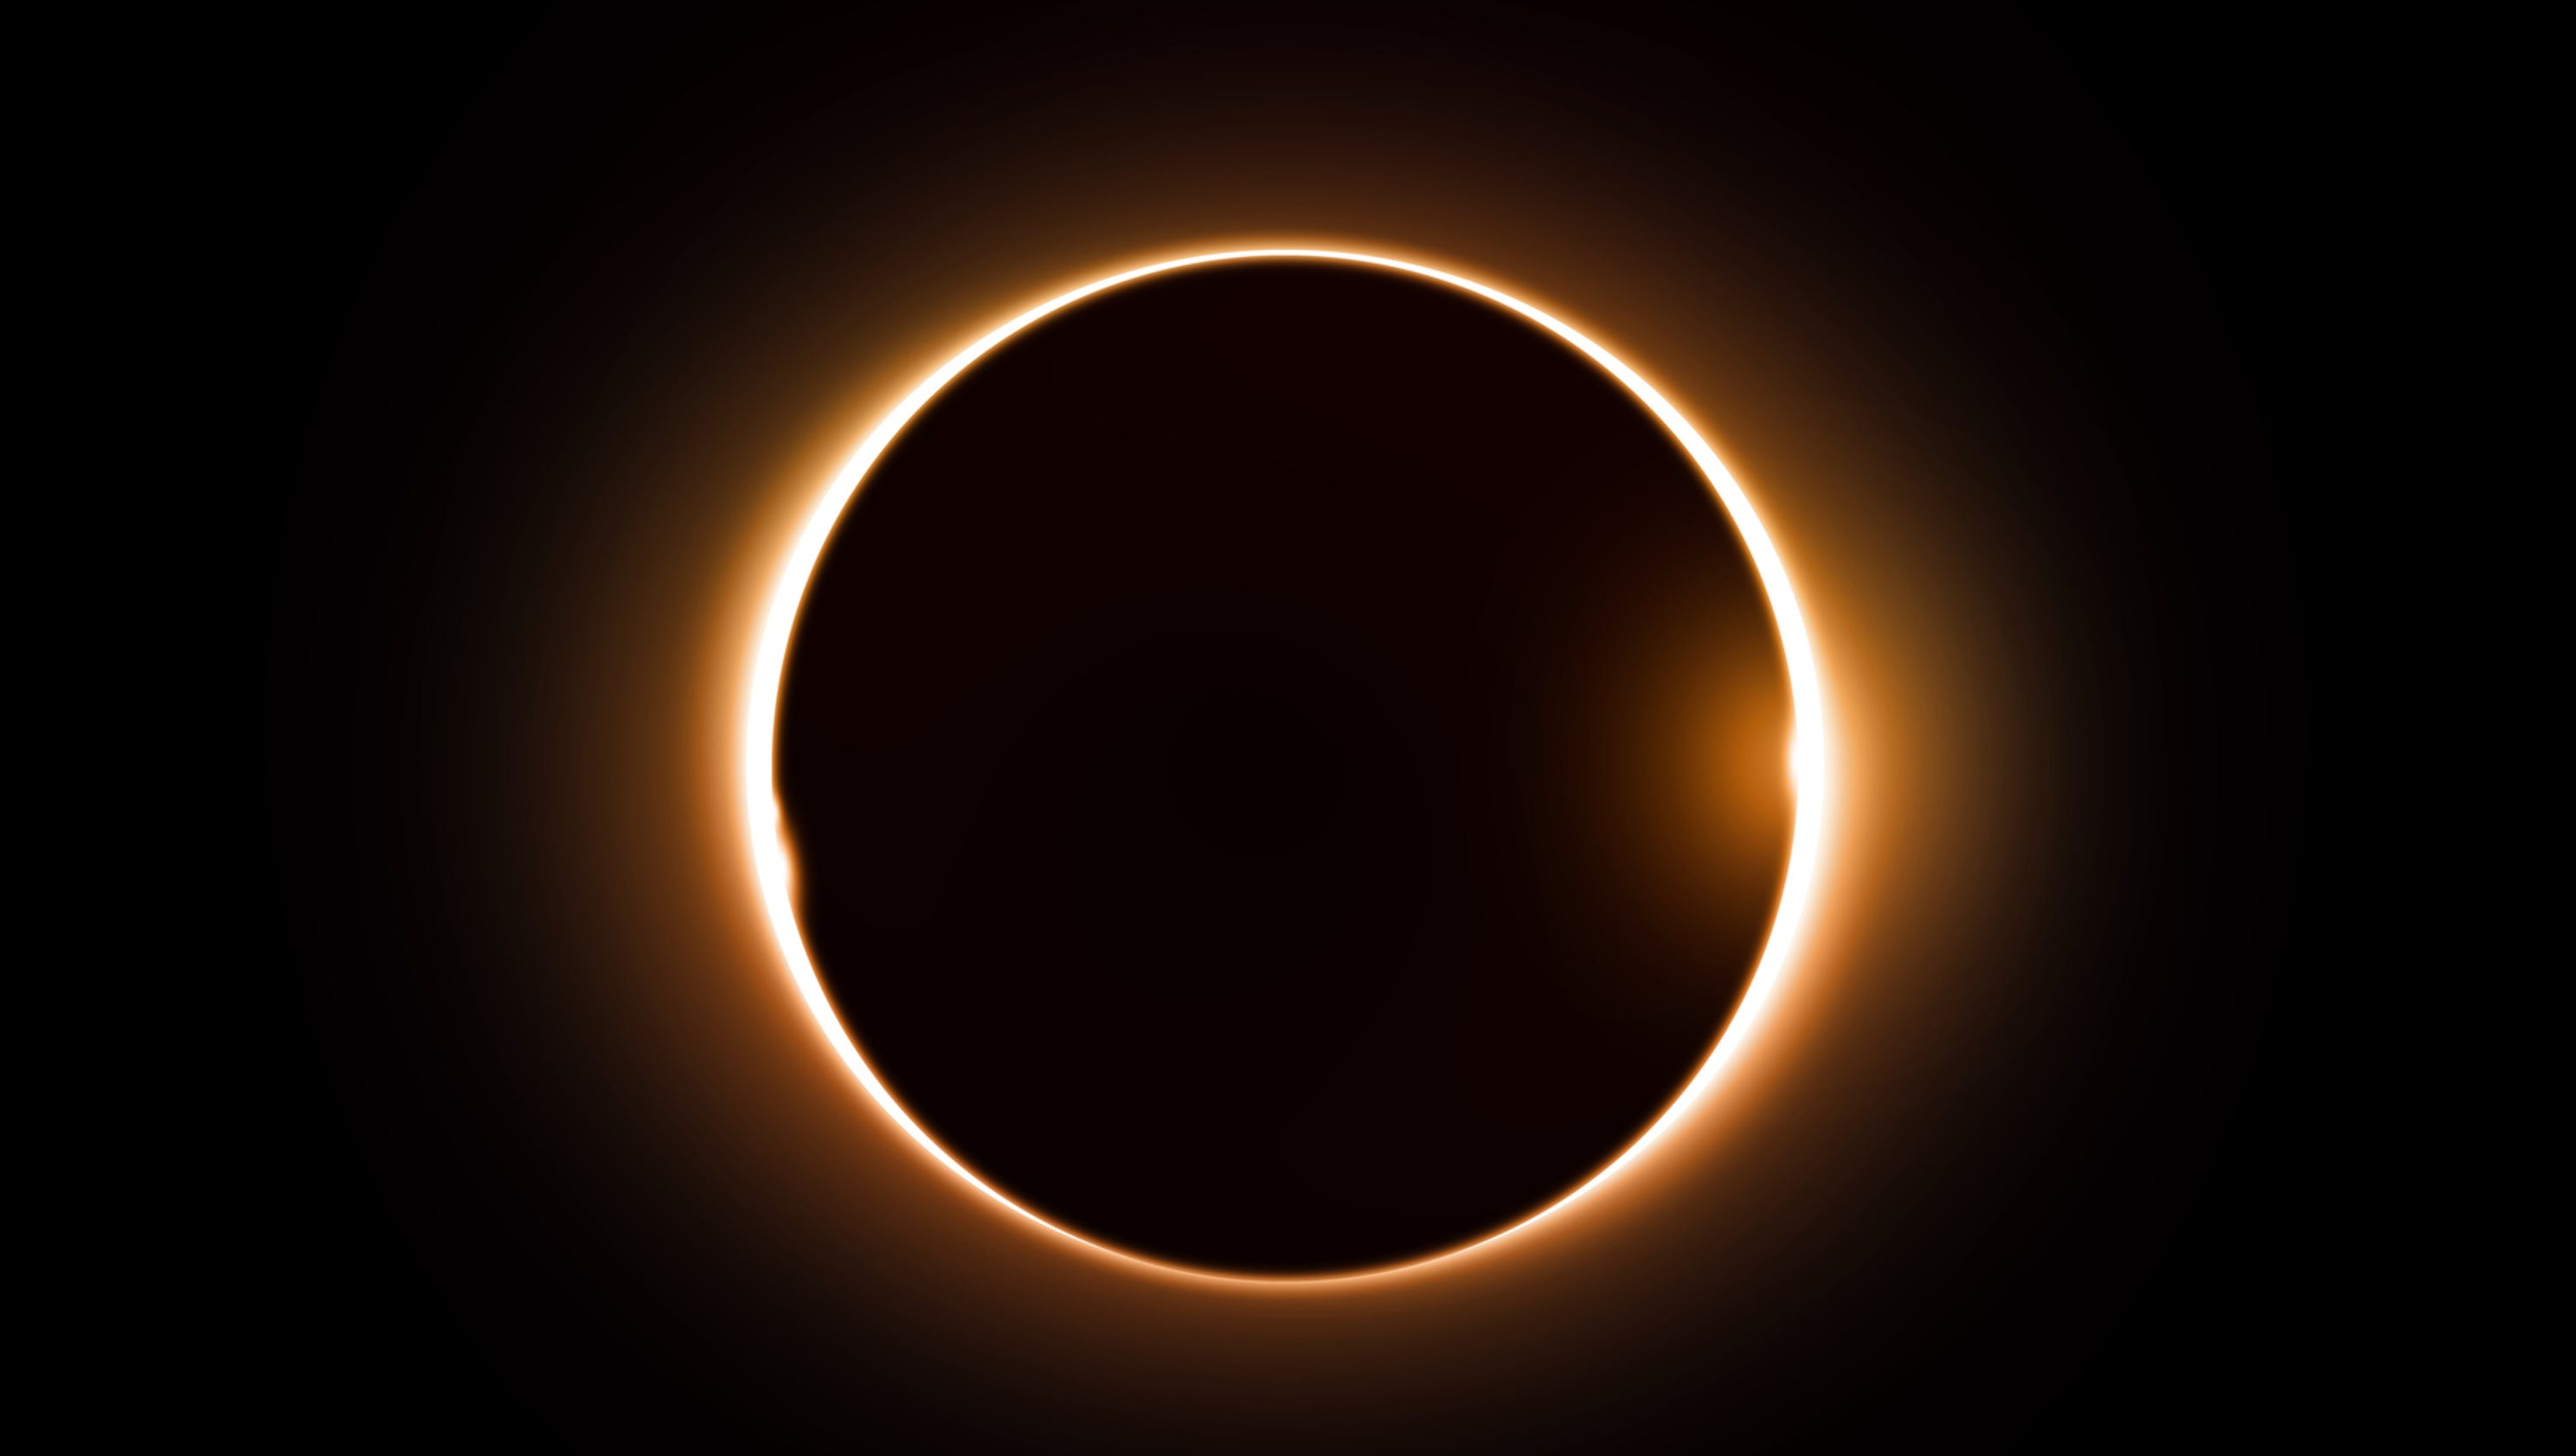 Solar eclipse by zip code find out if you live in the path pooptronica Image collections